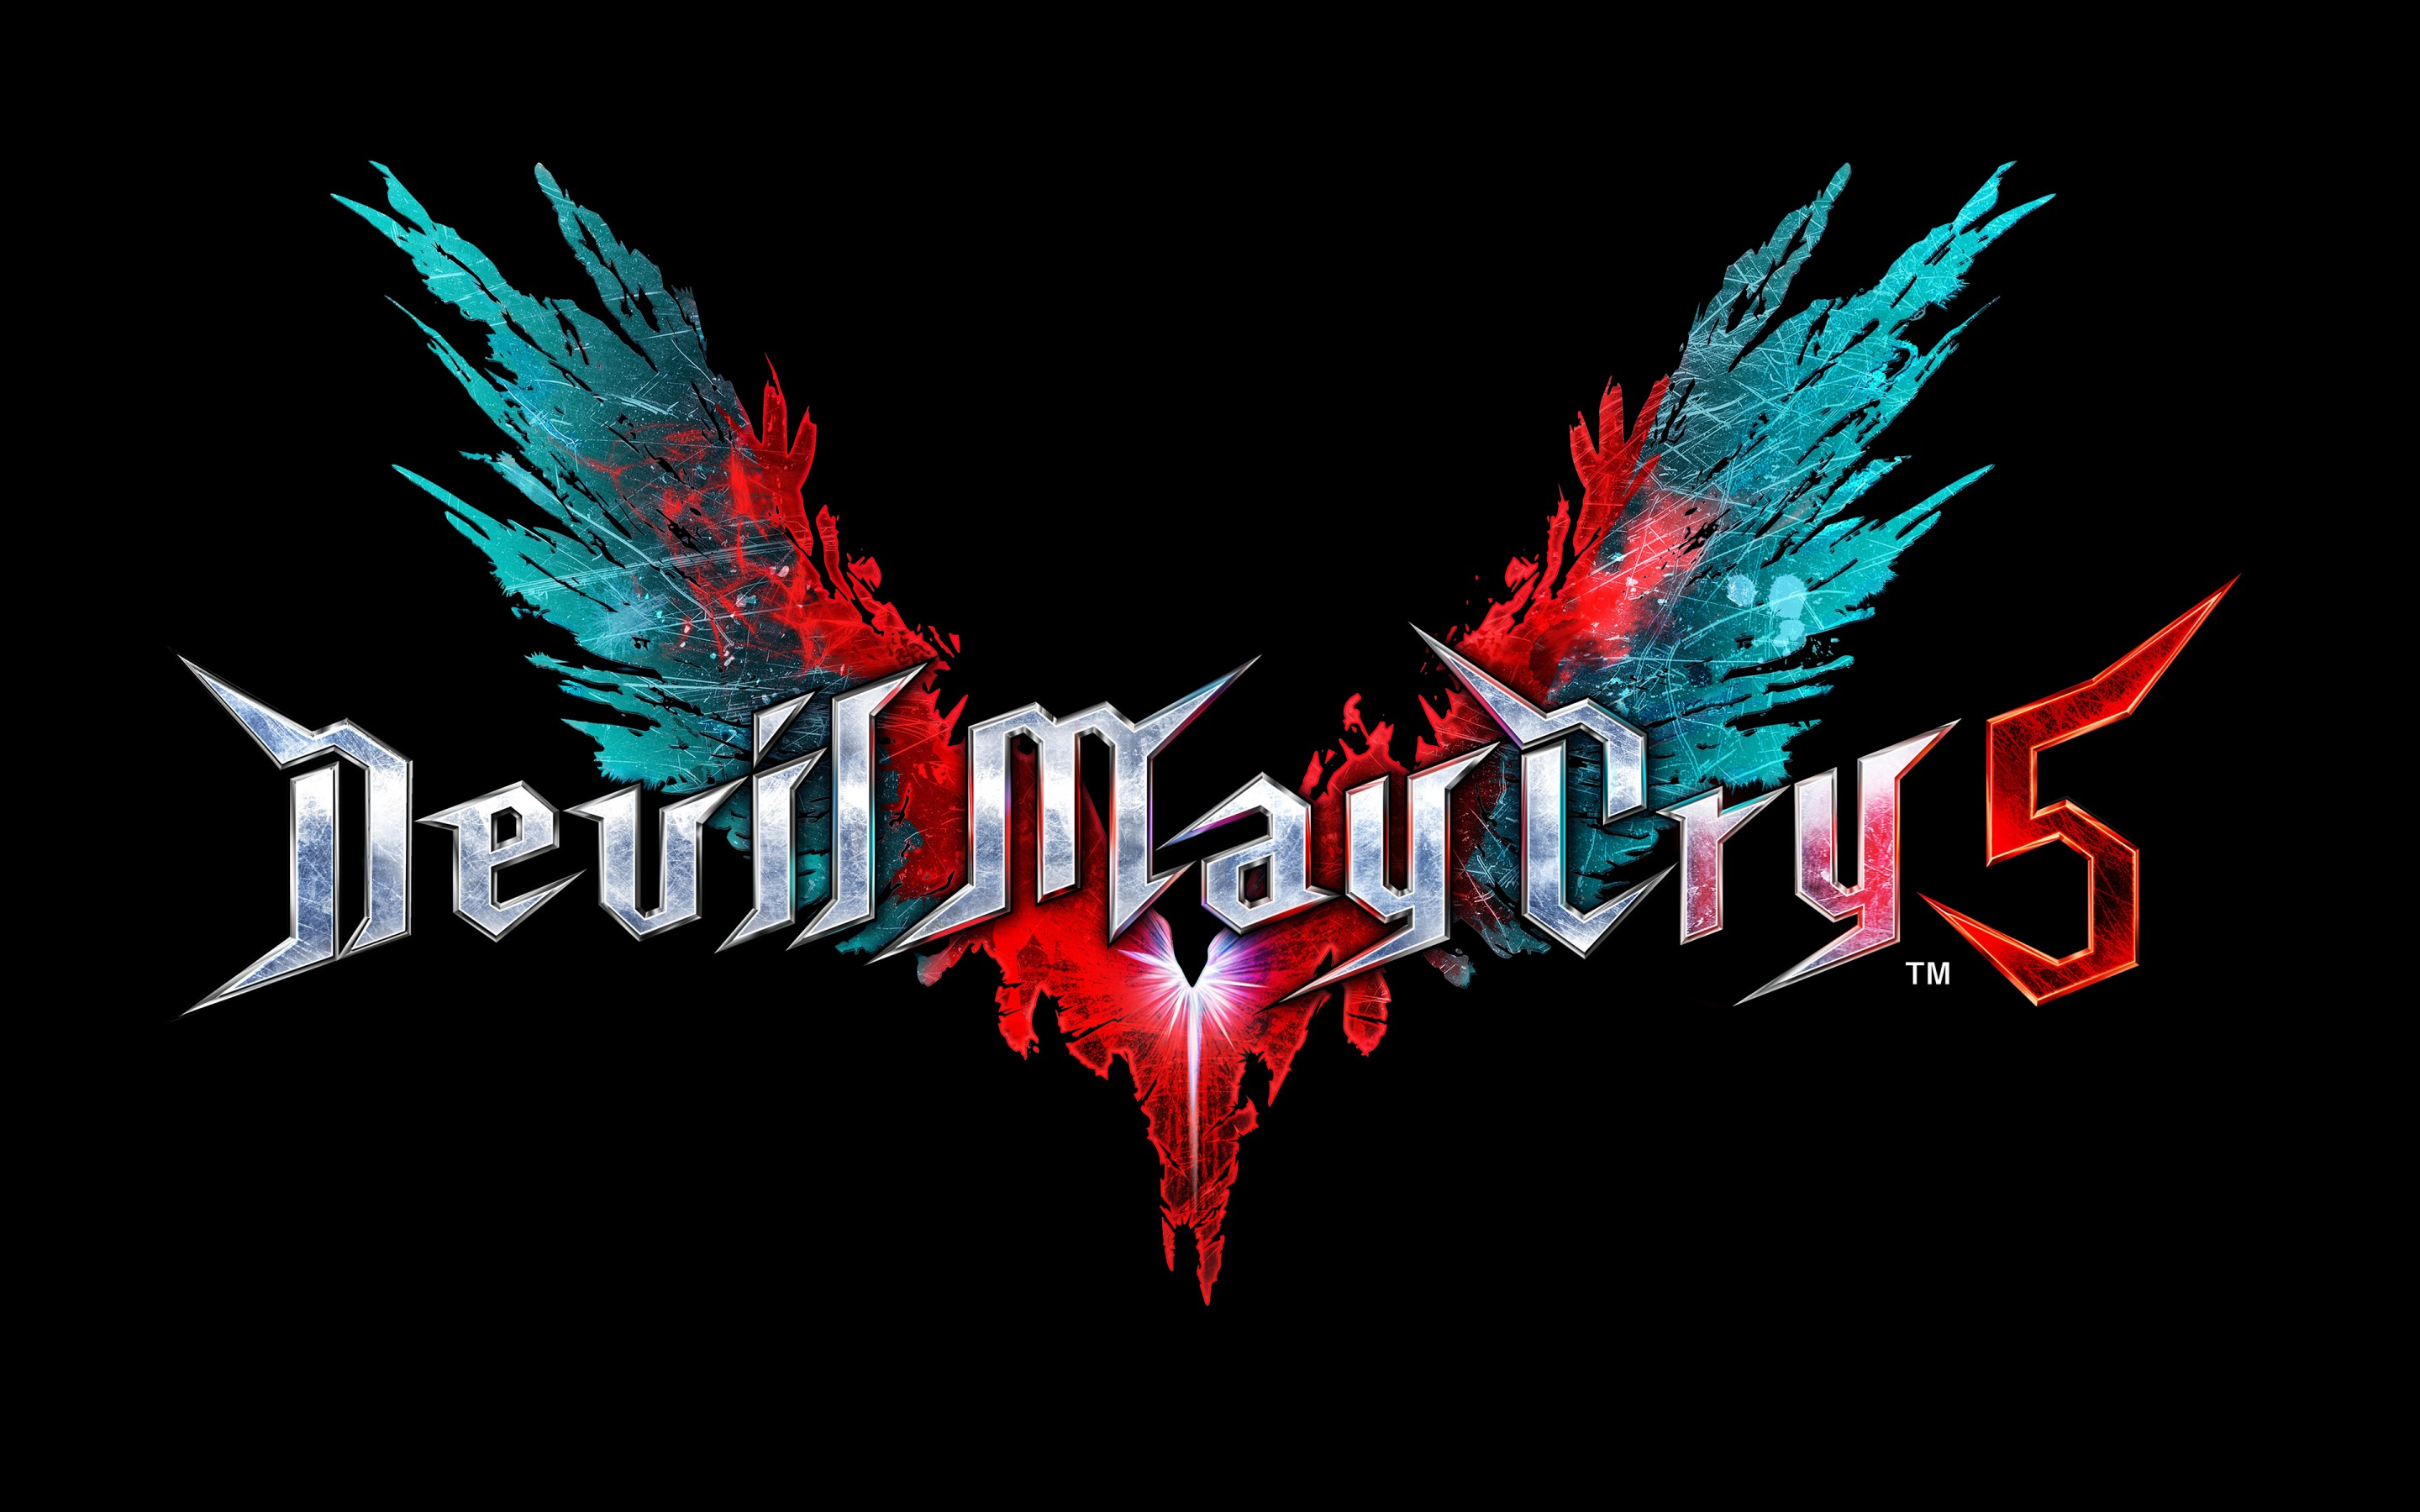 Devil May Cry Wallpaper Hd Devil May Cry 5 5k Wallpapers Hd Wallpapers Id 24551